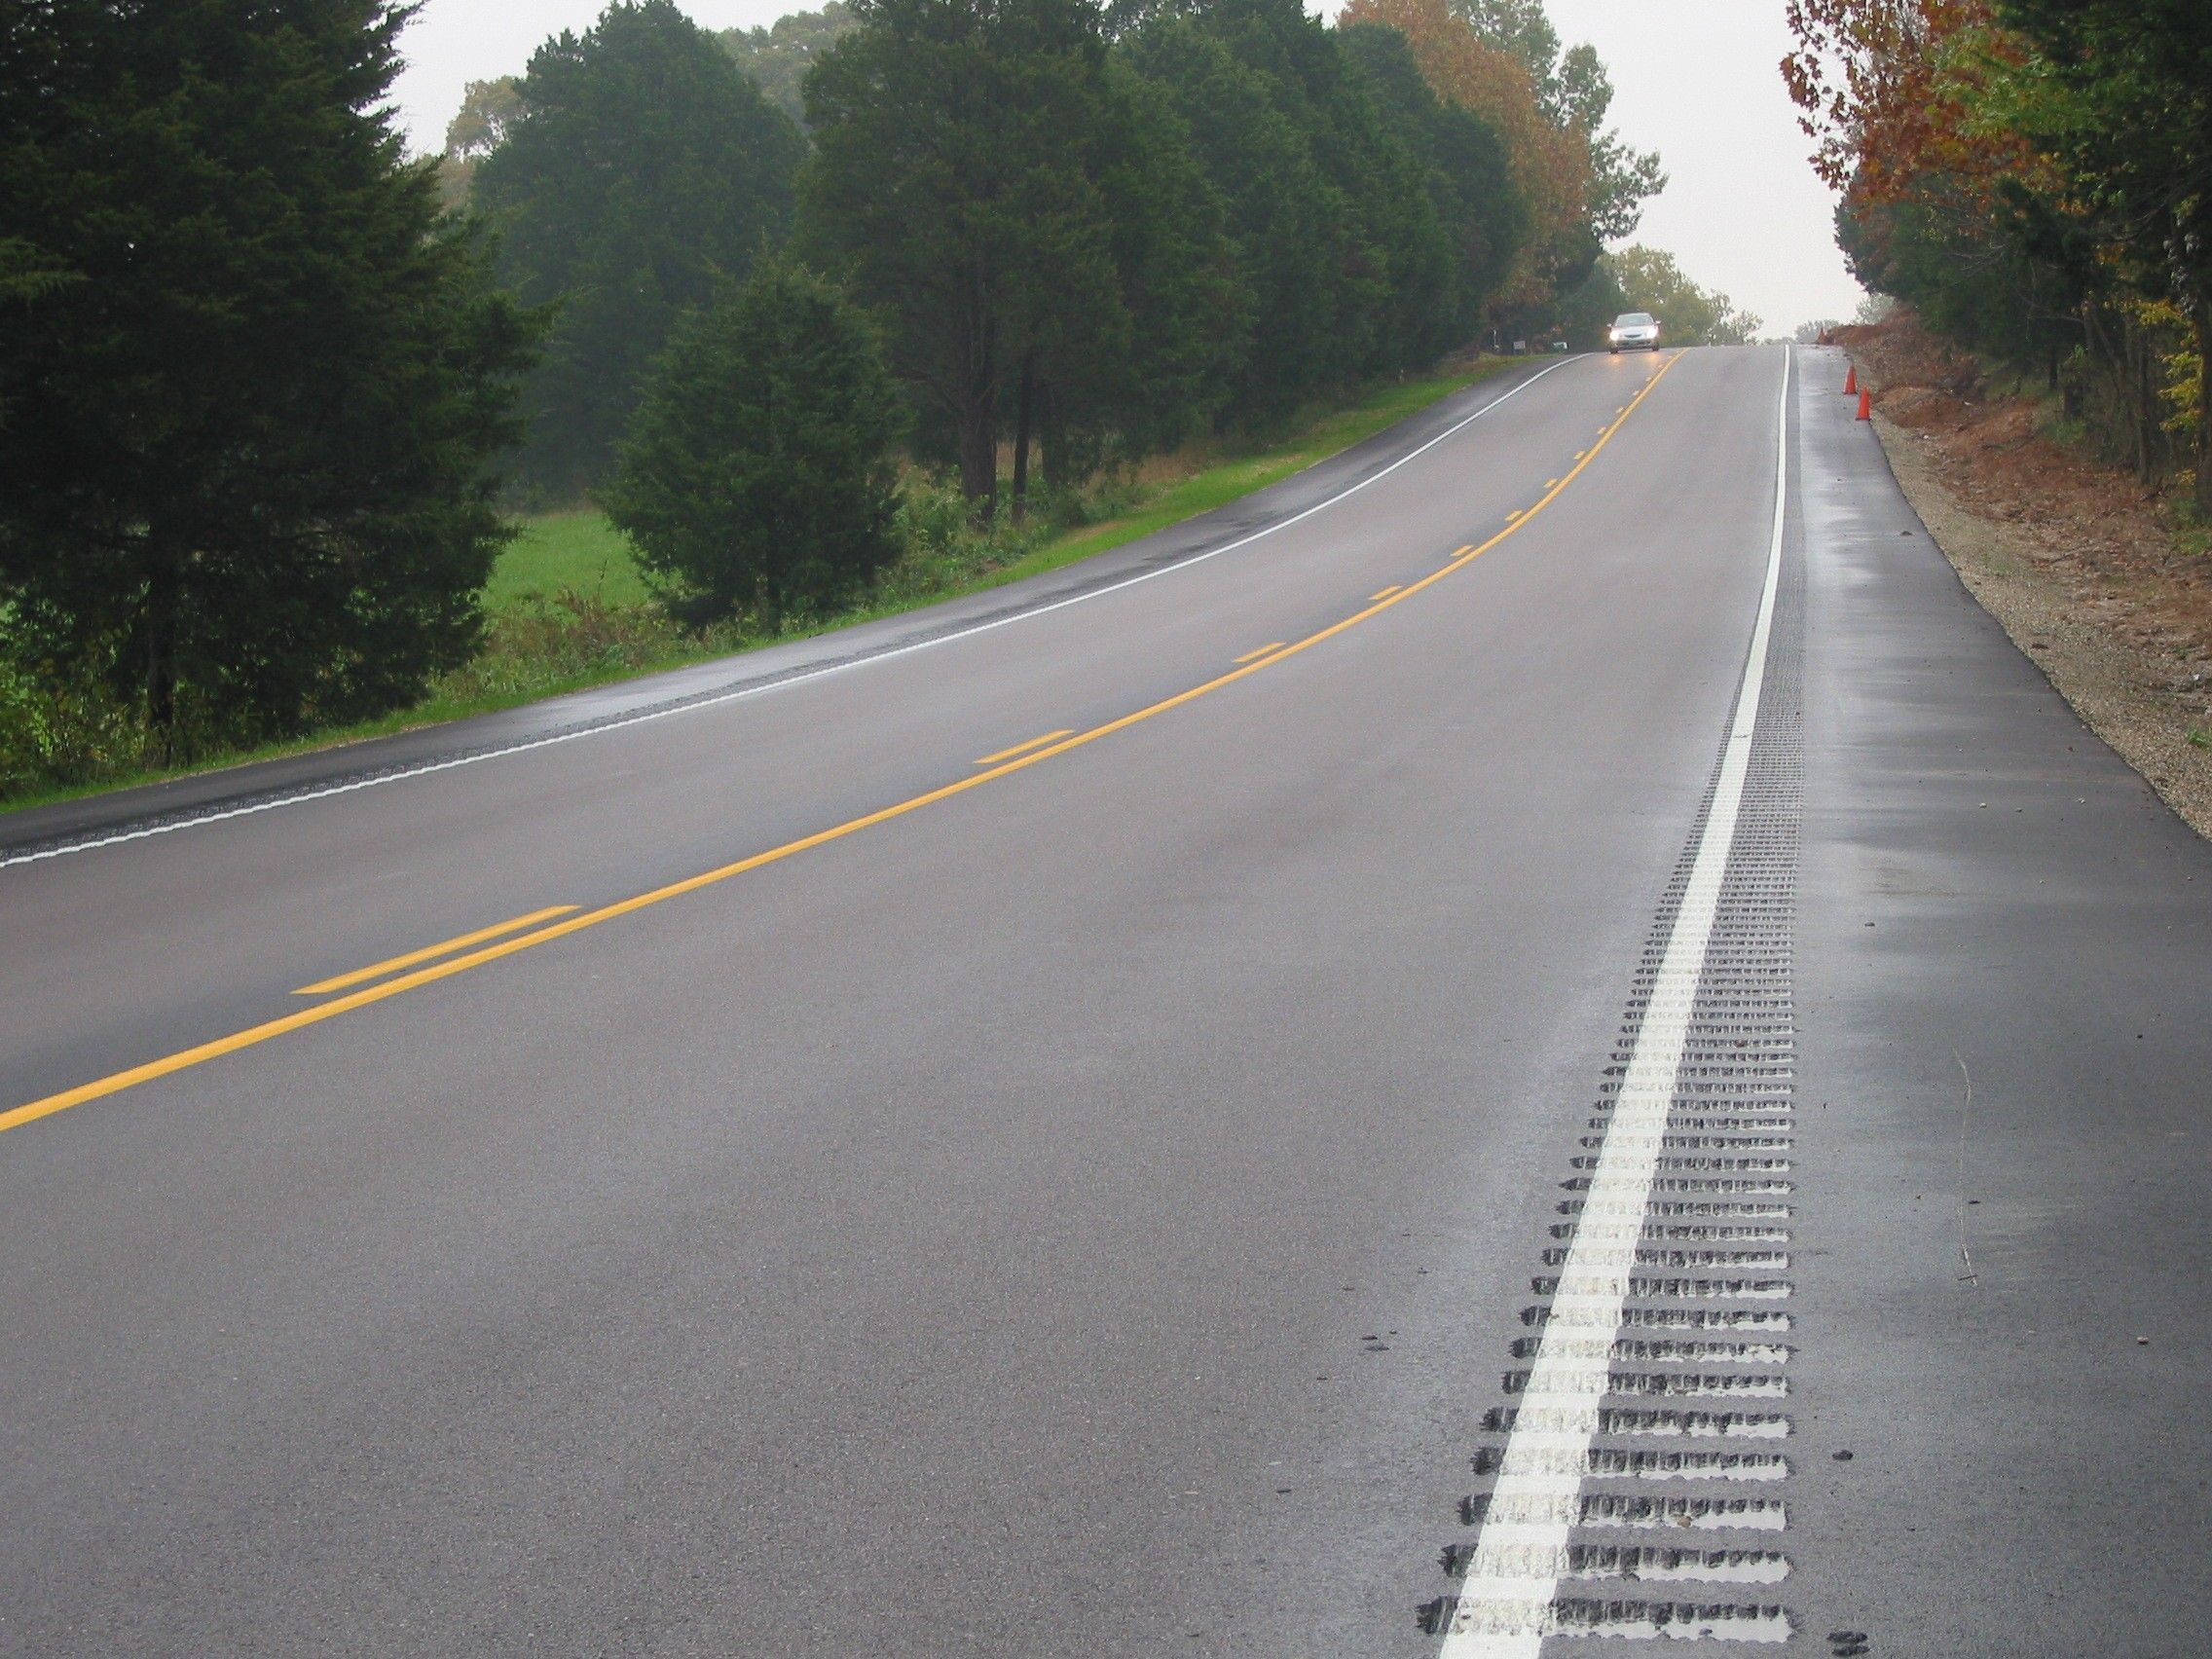 Category 400 Flexible Pavement Engineering Policy Guide